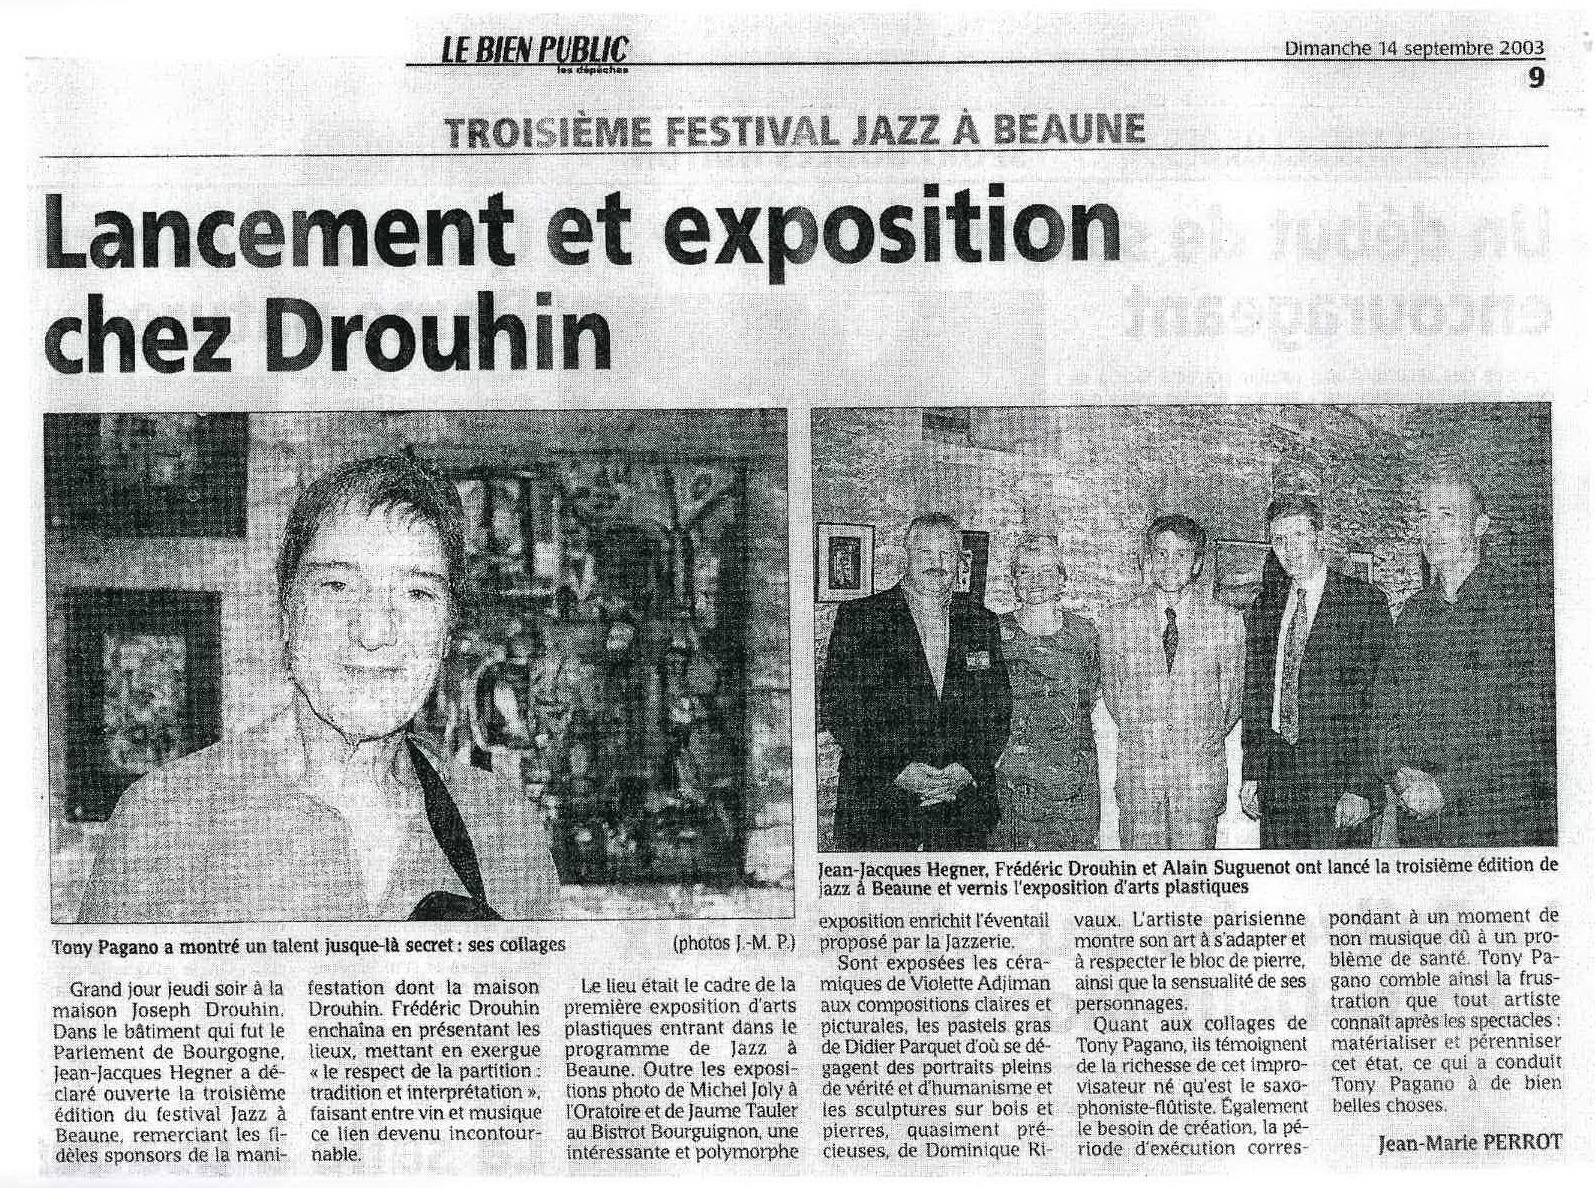 Article LE BIEN PUBLIC - Jazz à Beaune 2003